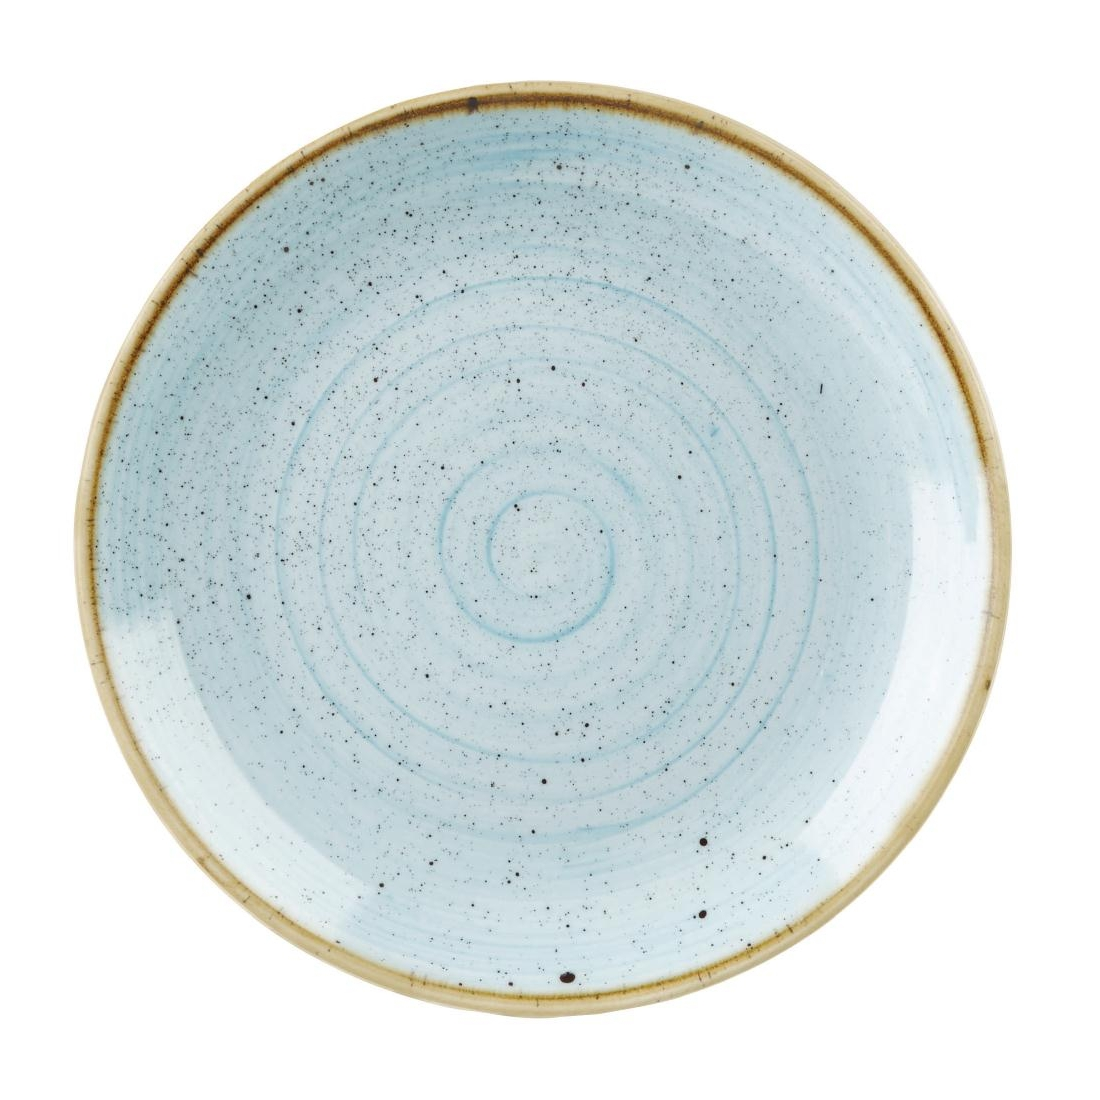 Churchill Stonecast Round Coupe Plate Duck Egg Blue 260mm by Churchill Super Vitrified-DK500 - Smart Hospitality Supplies  sc 1 st  Smart Hospitality Supplies & Churchill Stonecast Round Coupe Plate Duck Egg Blue 260mm by ...